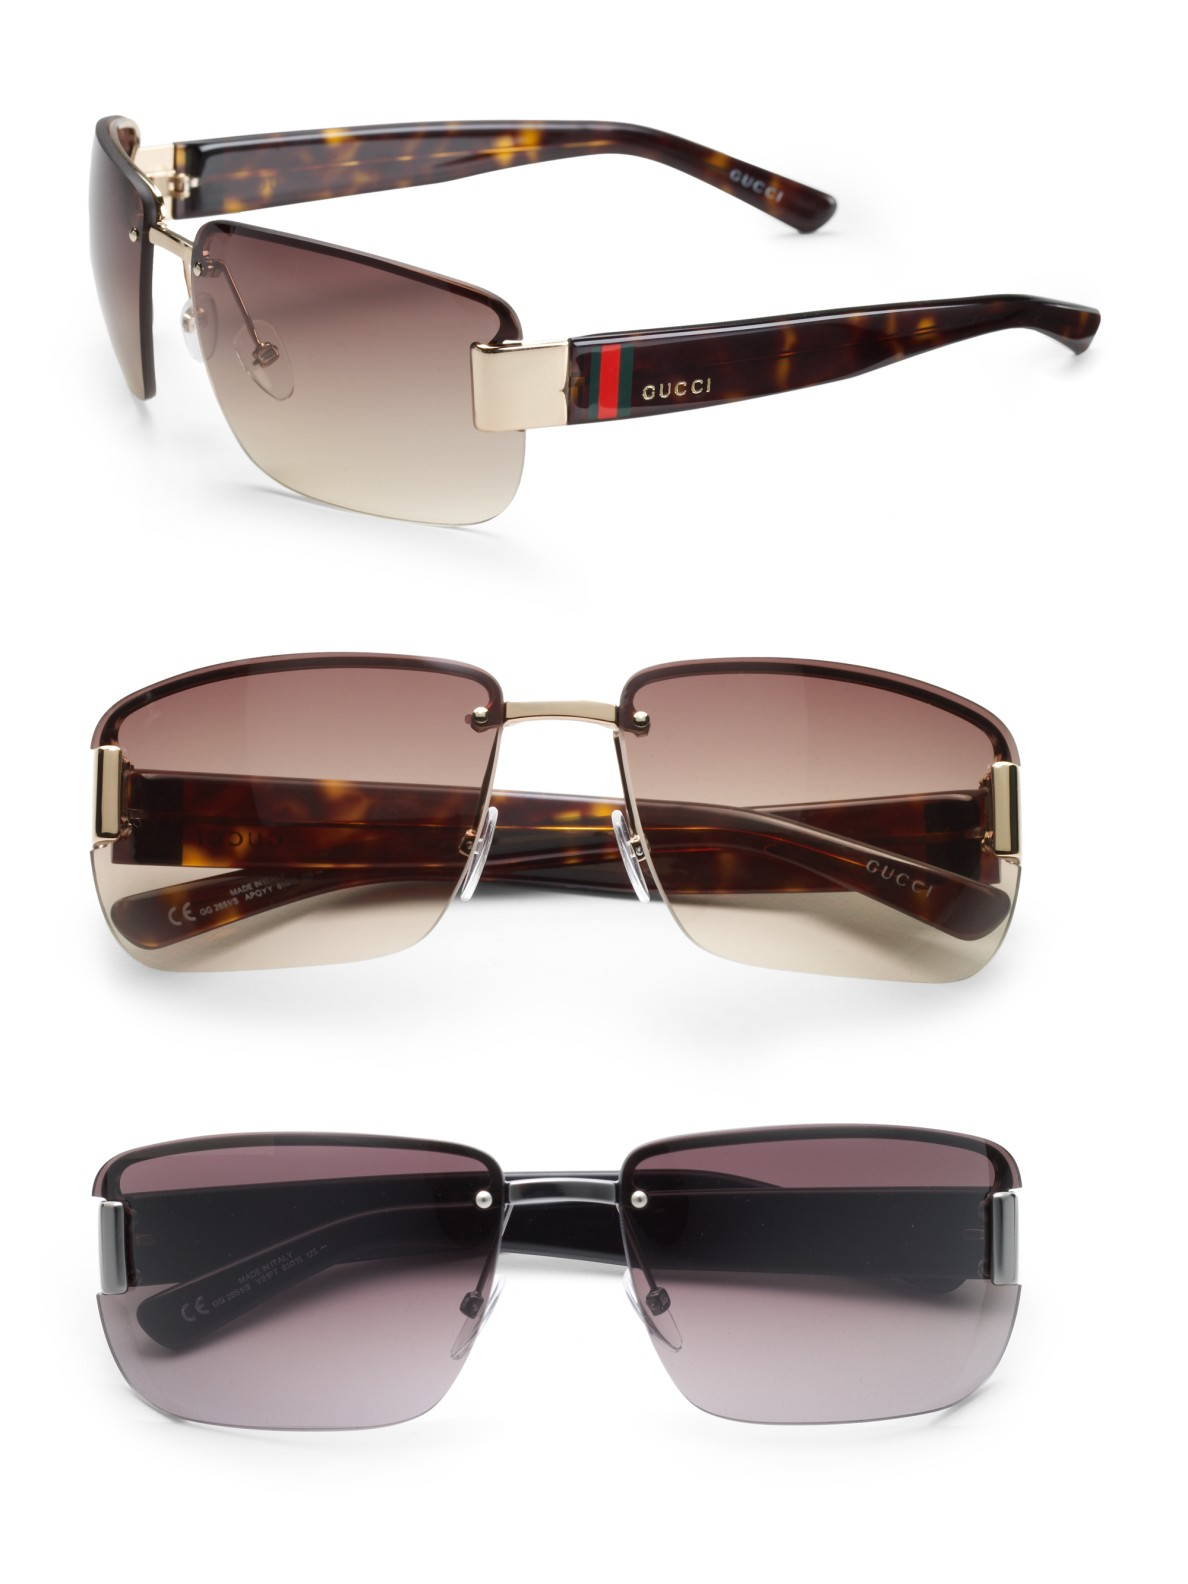 Cateye Brown 8434zu moreover Yuvarlak G C3 B6zl C3 BCk further Ray Ban sunglasses also Oliver Peoples Bernardo Rectangle Sunglasses Pastel Brown likewise Lb. on vintage ray ban frames